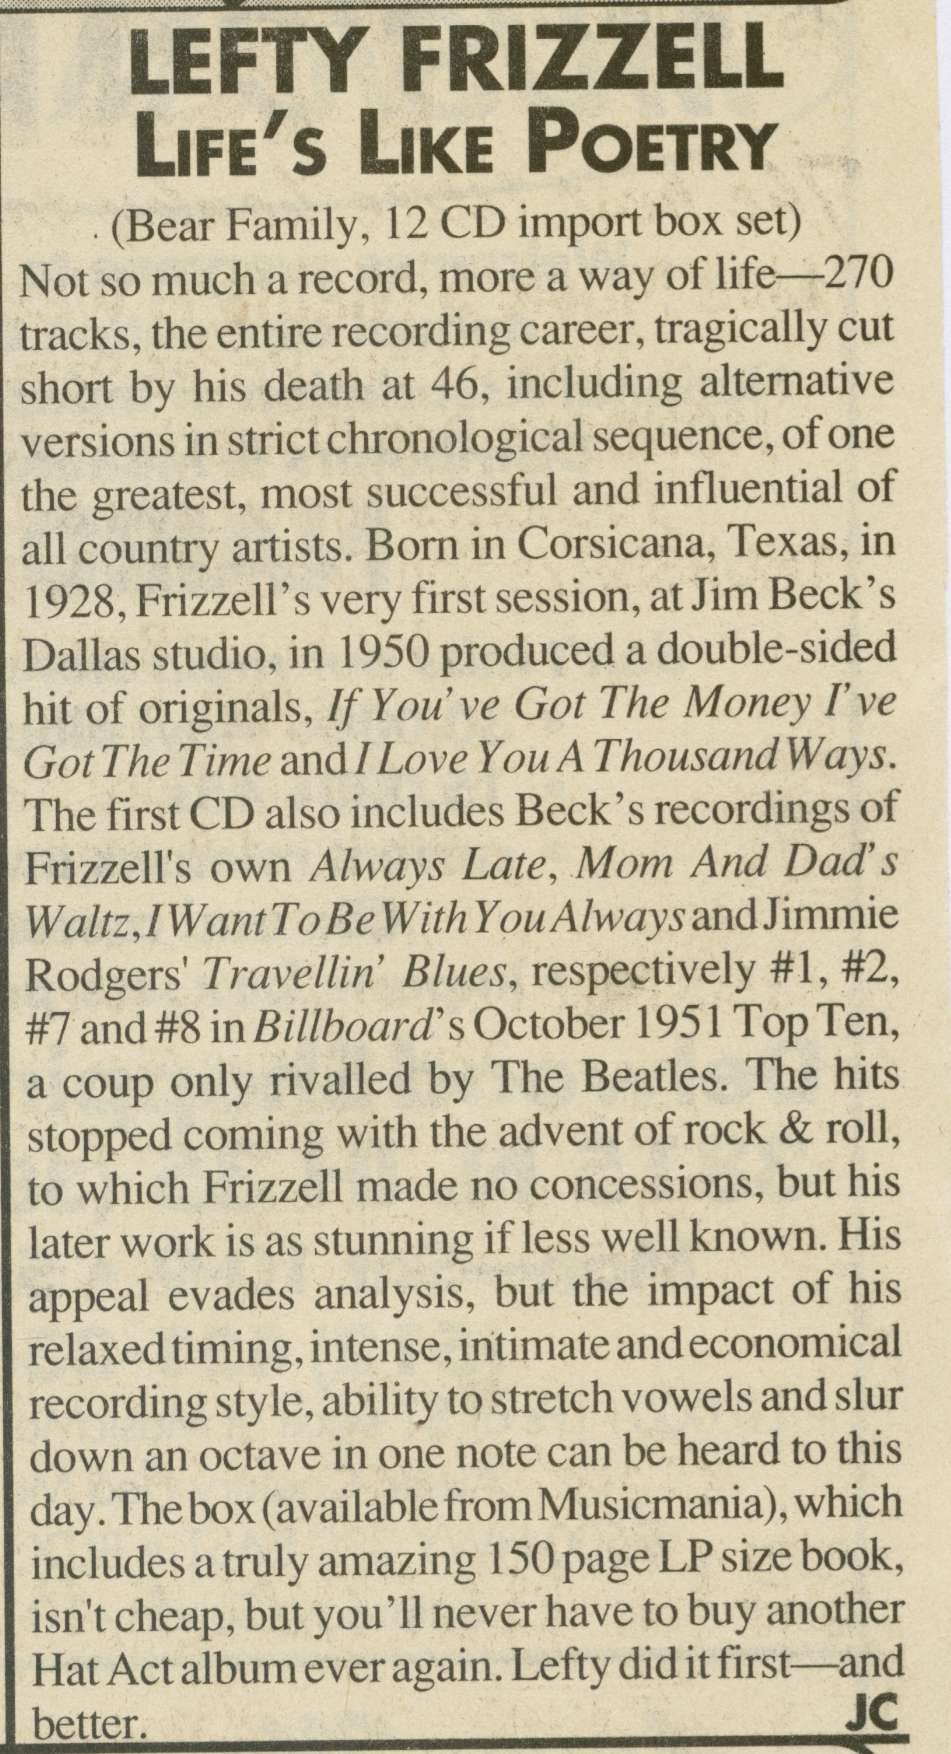 Press - Lefty Frizzell - Life's Like Poetry 12-CD-Box - Music City Texas